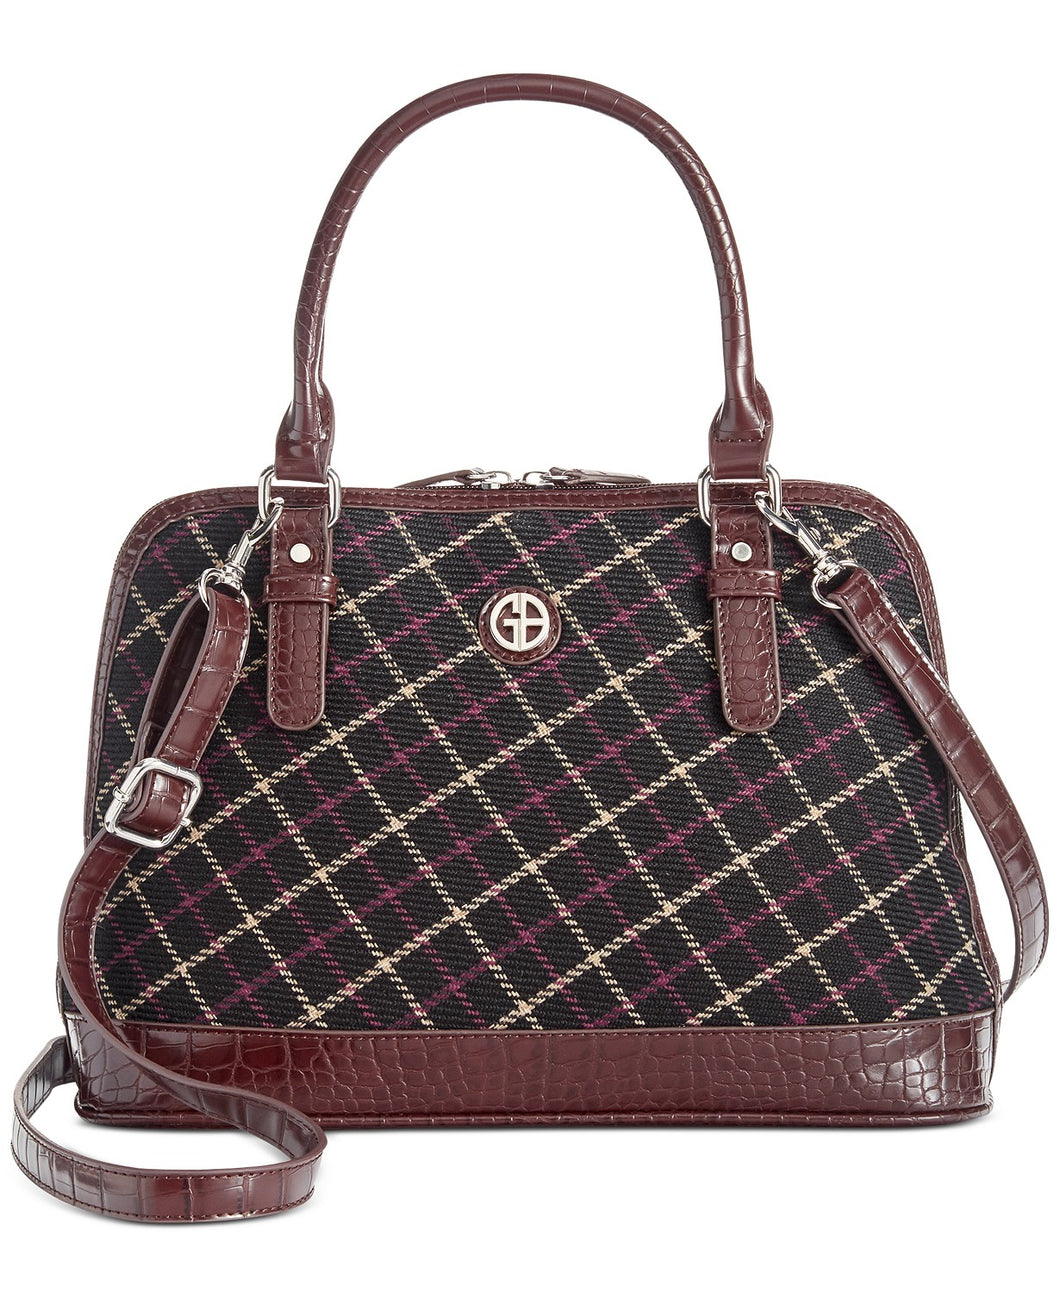 GIANI BERNINI - Plaid Croco Dome Satchel